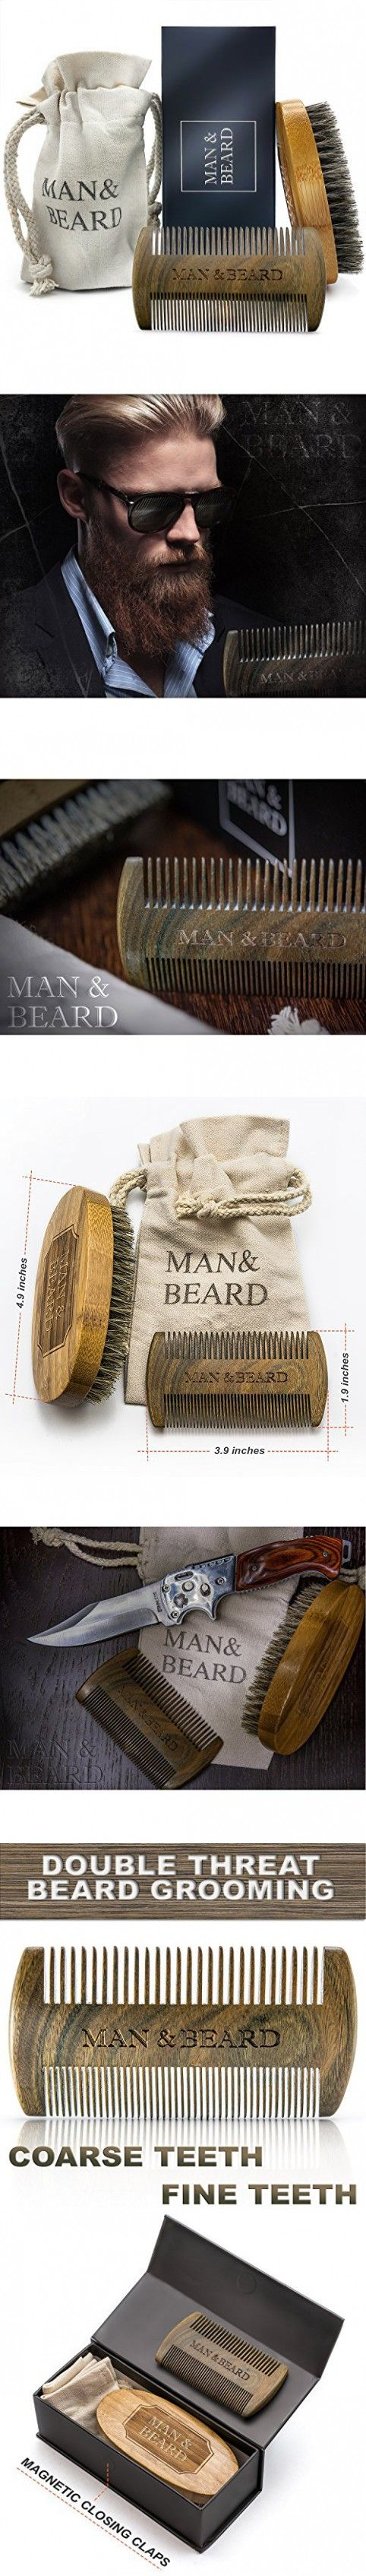 Man&Beard - Handmade Bamboo Beard Dual Action Comb and Bamboo Brush with Wild Boar Bristles for Men. Perfect Facial Hair Care and Growth Kit for Beard and Mustache Styling in Premium Gift Box